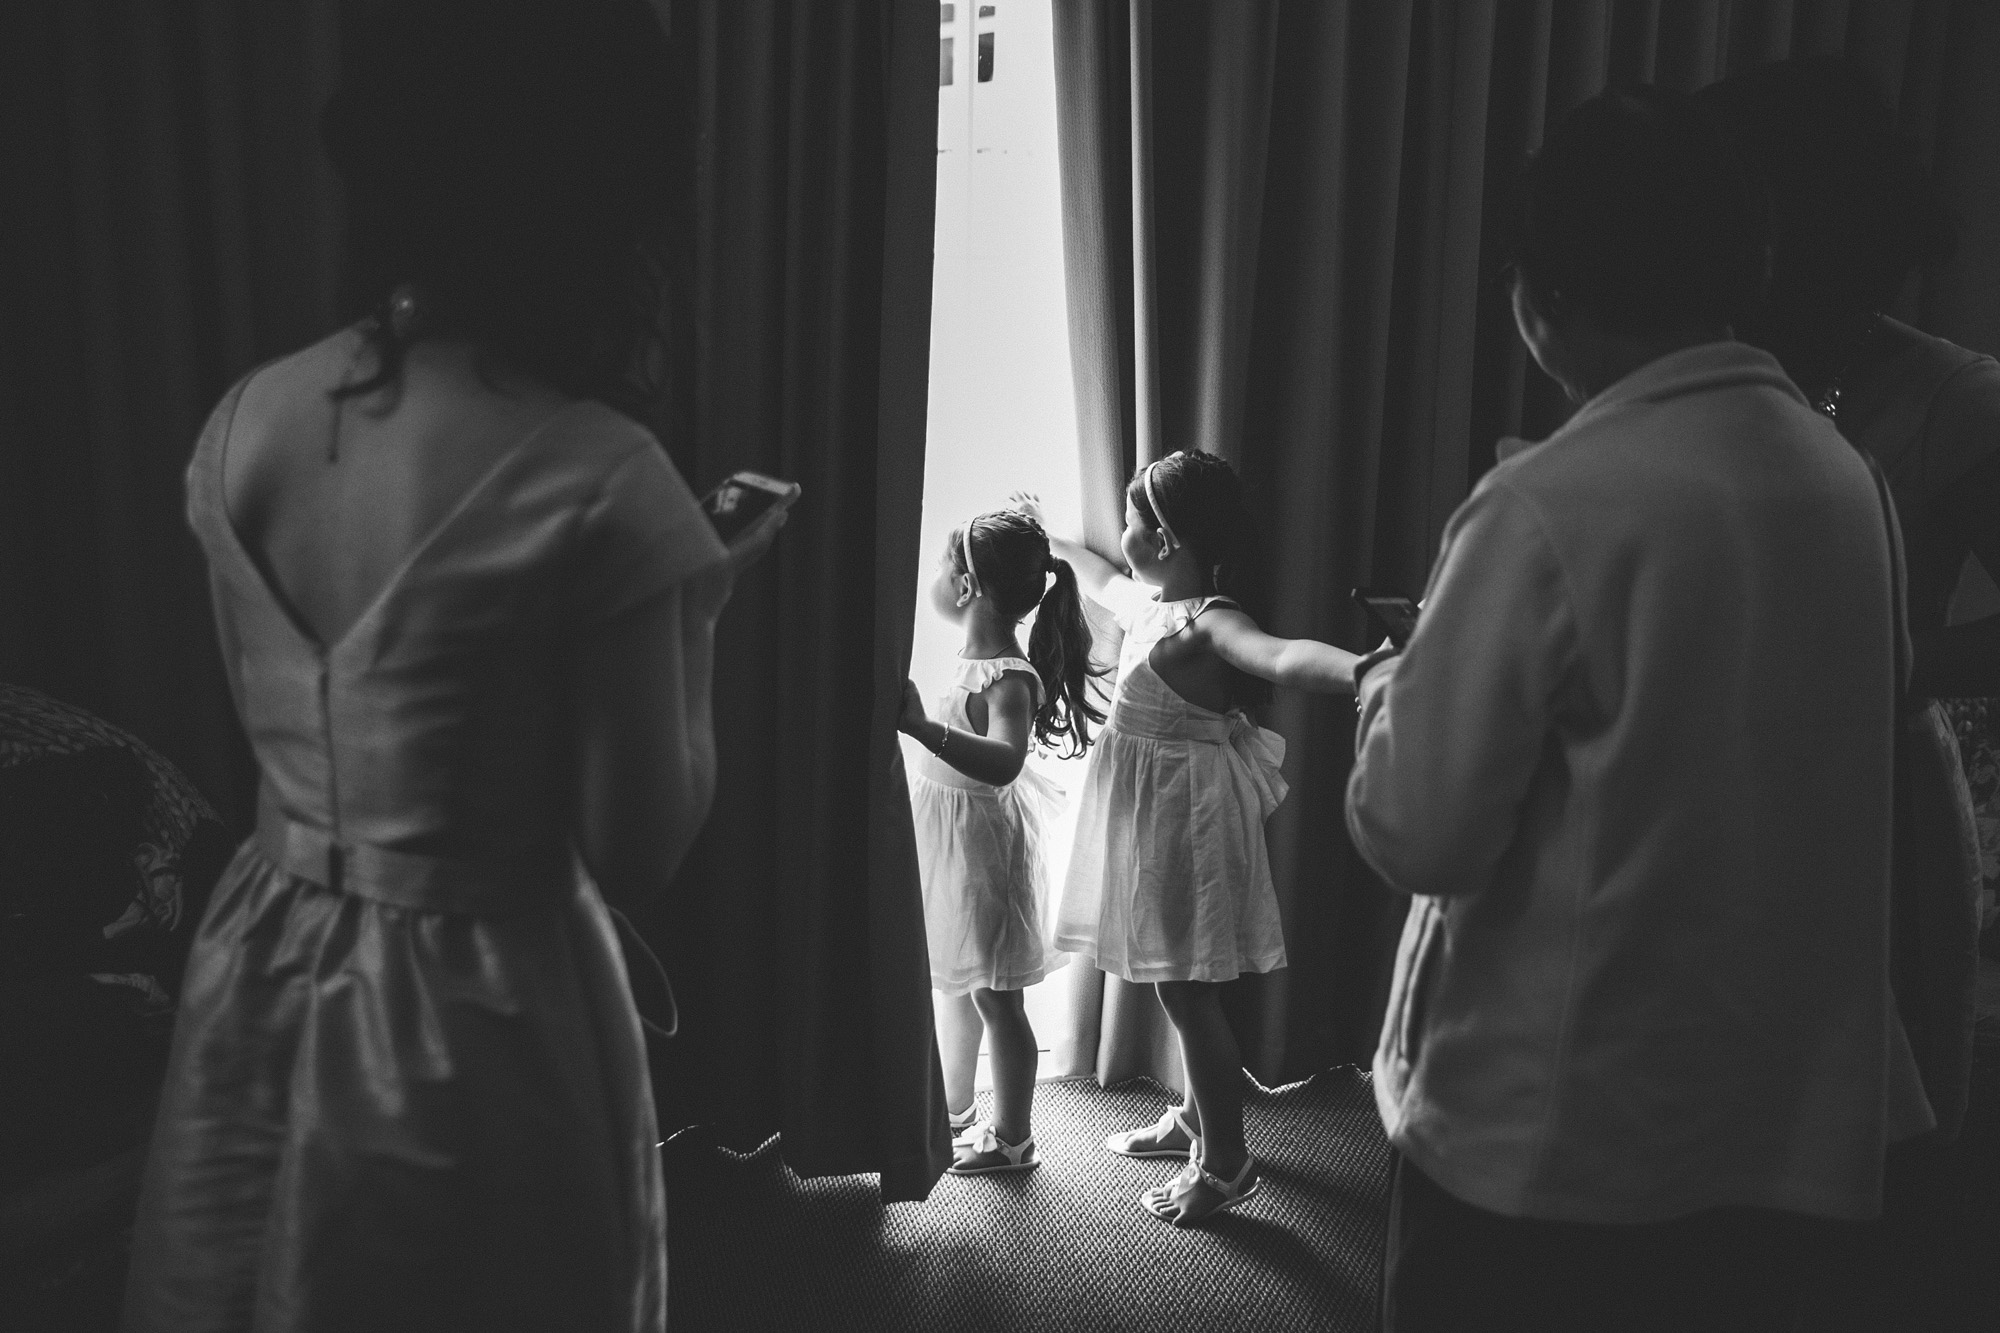 Sarah_McEvoy_Wellington_Wedding_Photographer_042.jpg